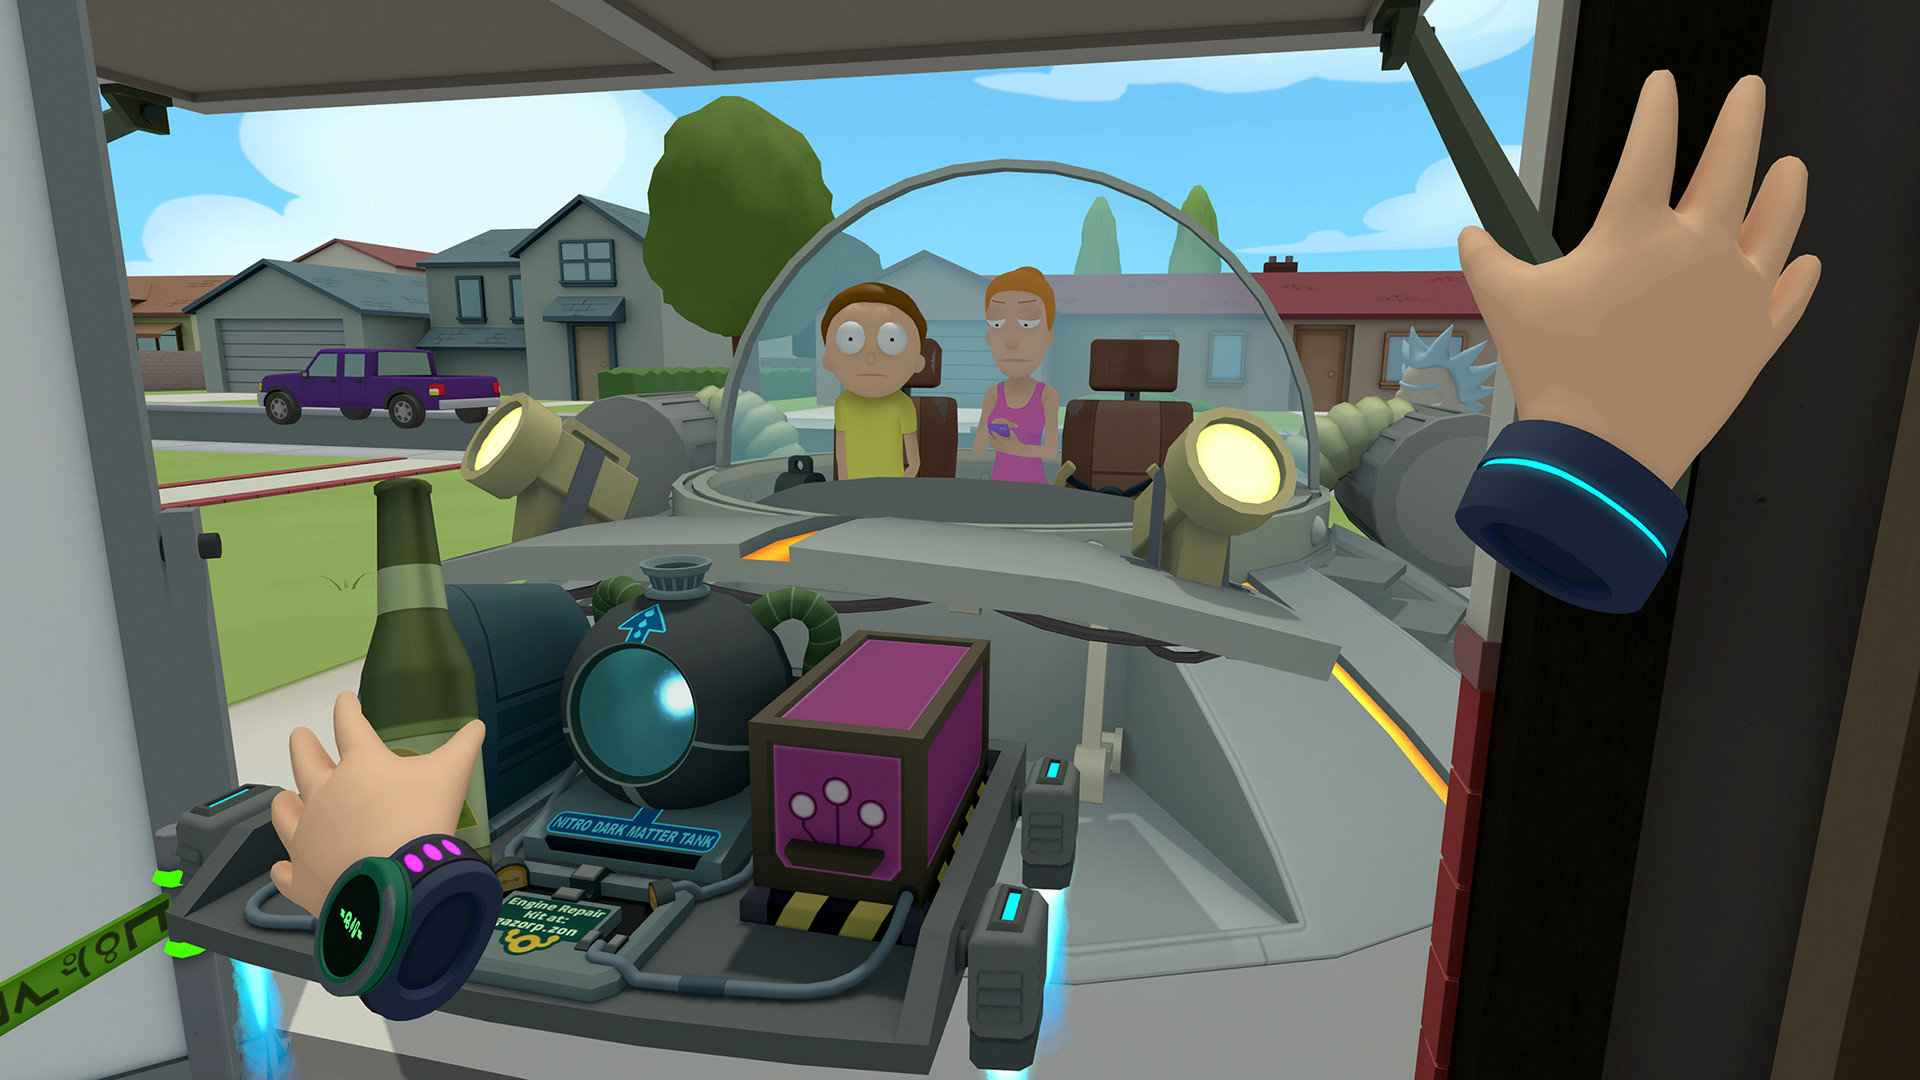 Rick and Morty Virtual Rick-ality has some great puzzles and humor that fans will absolutely love